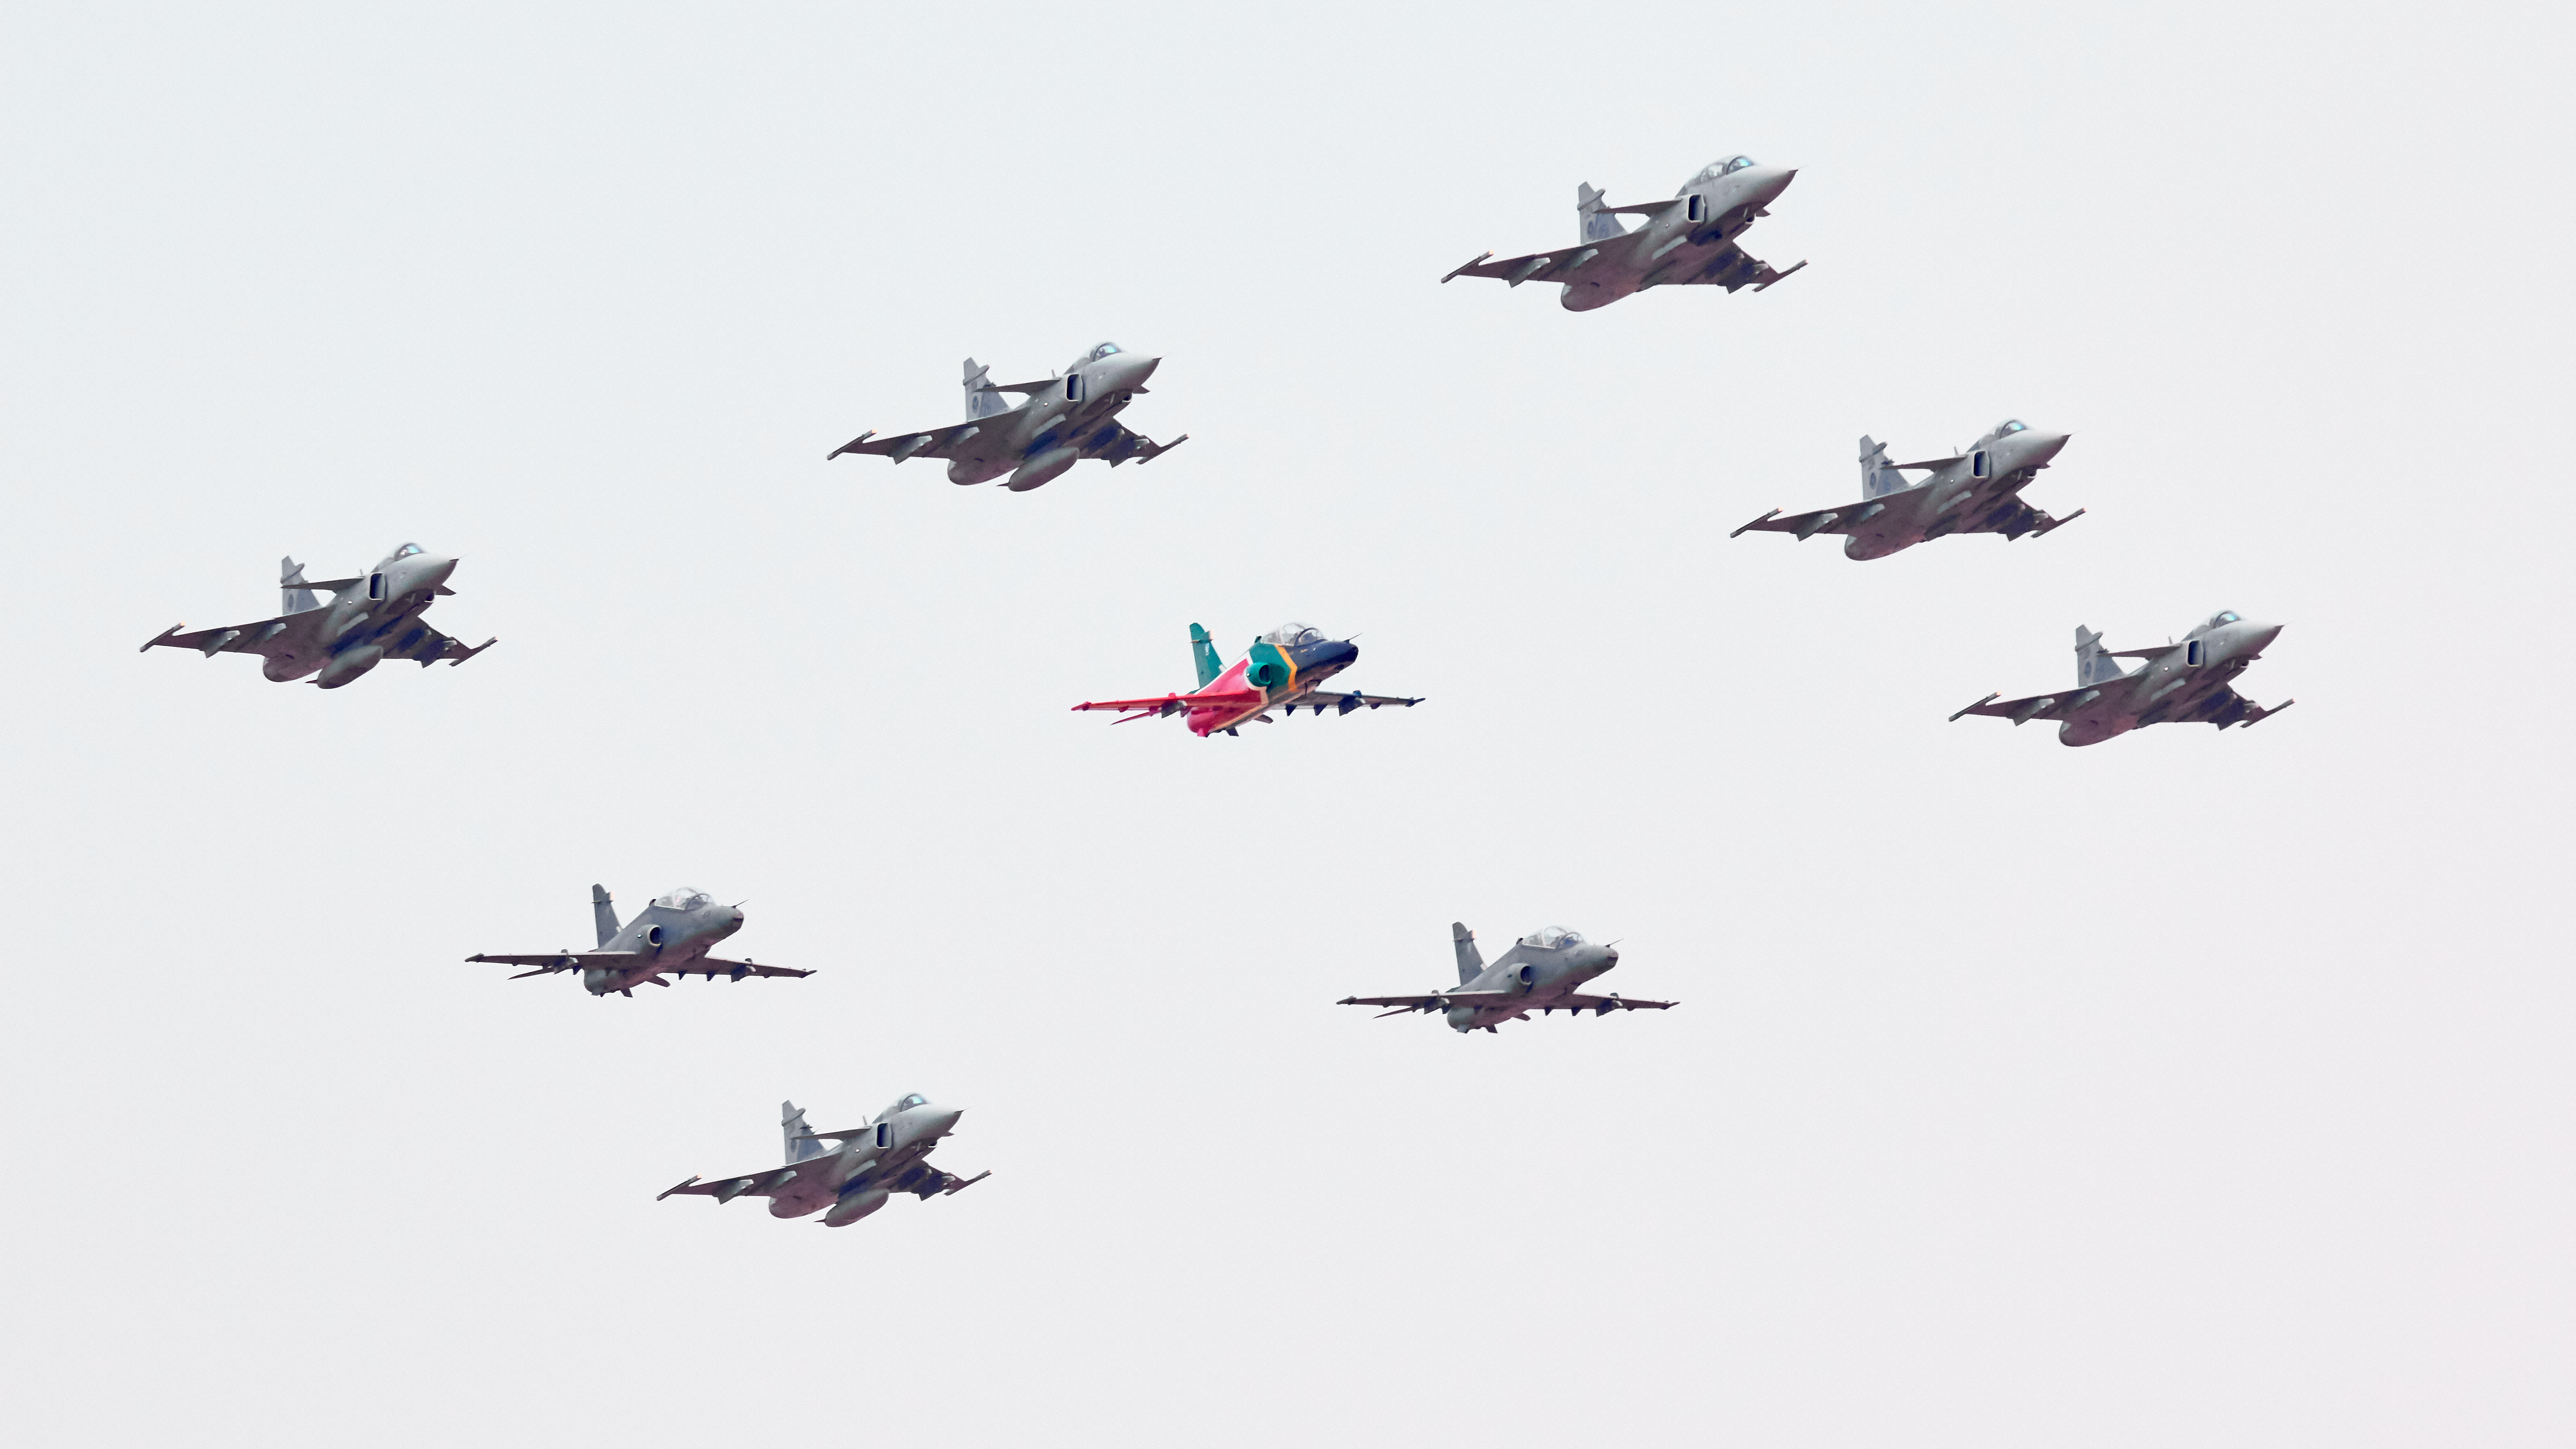 And this is how AAD 2018 got underway, apparently the largest SAAB Gripen formation ever on public display in South…